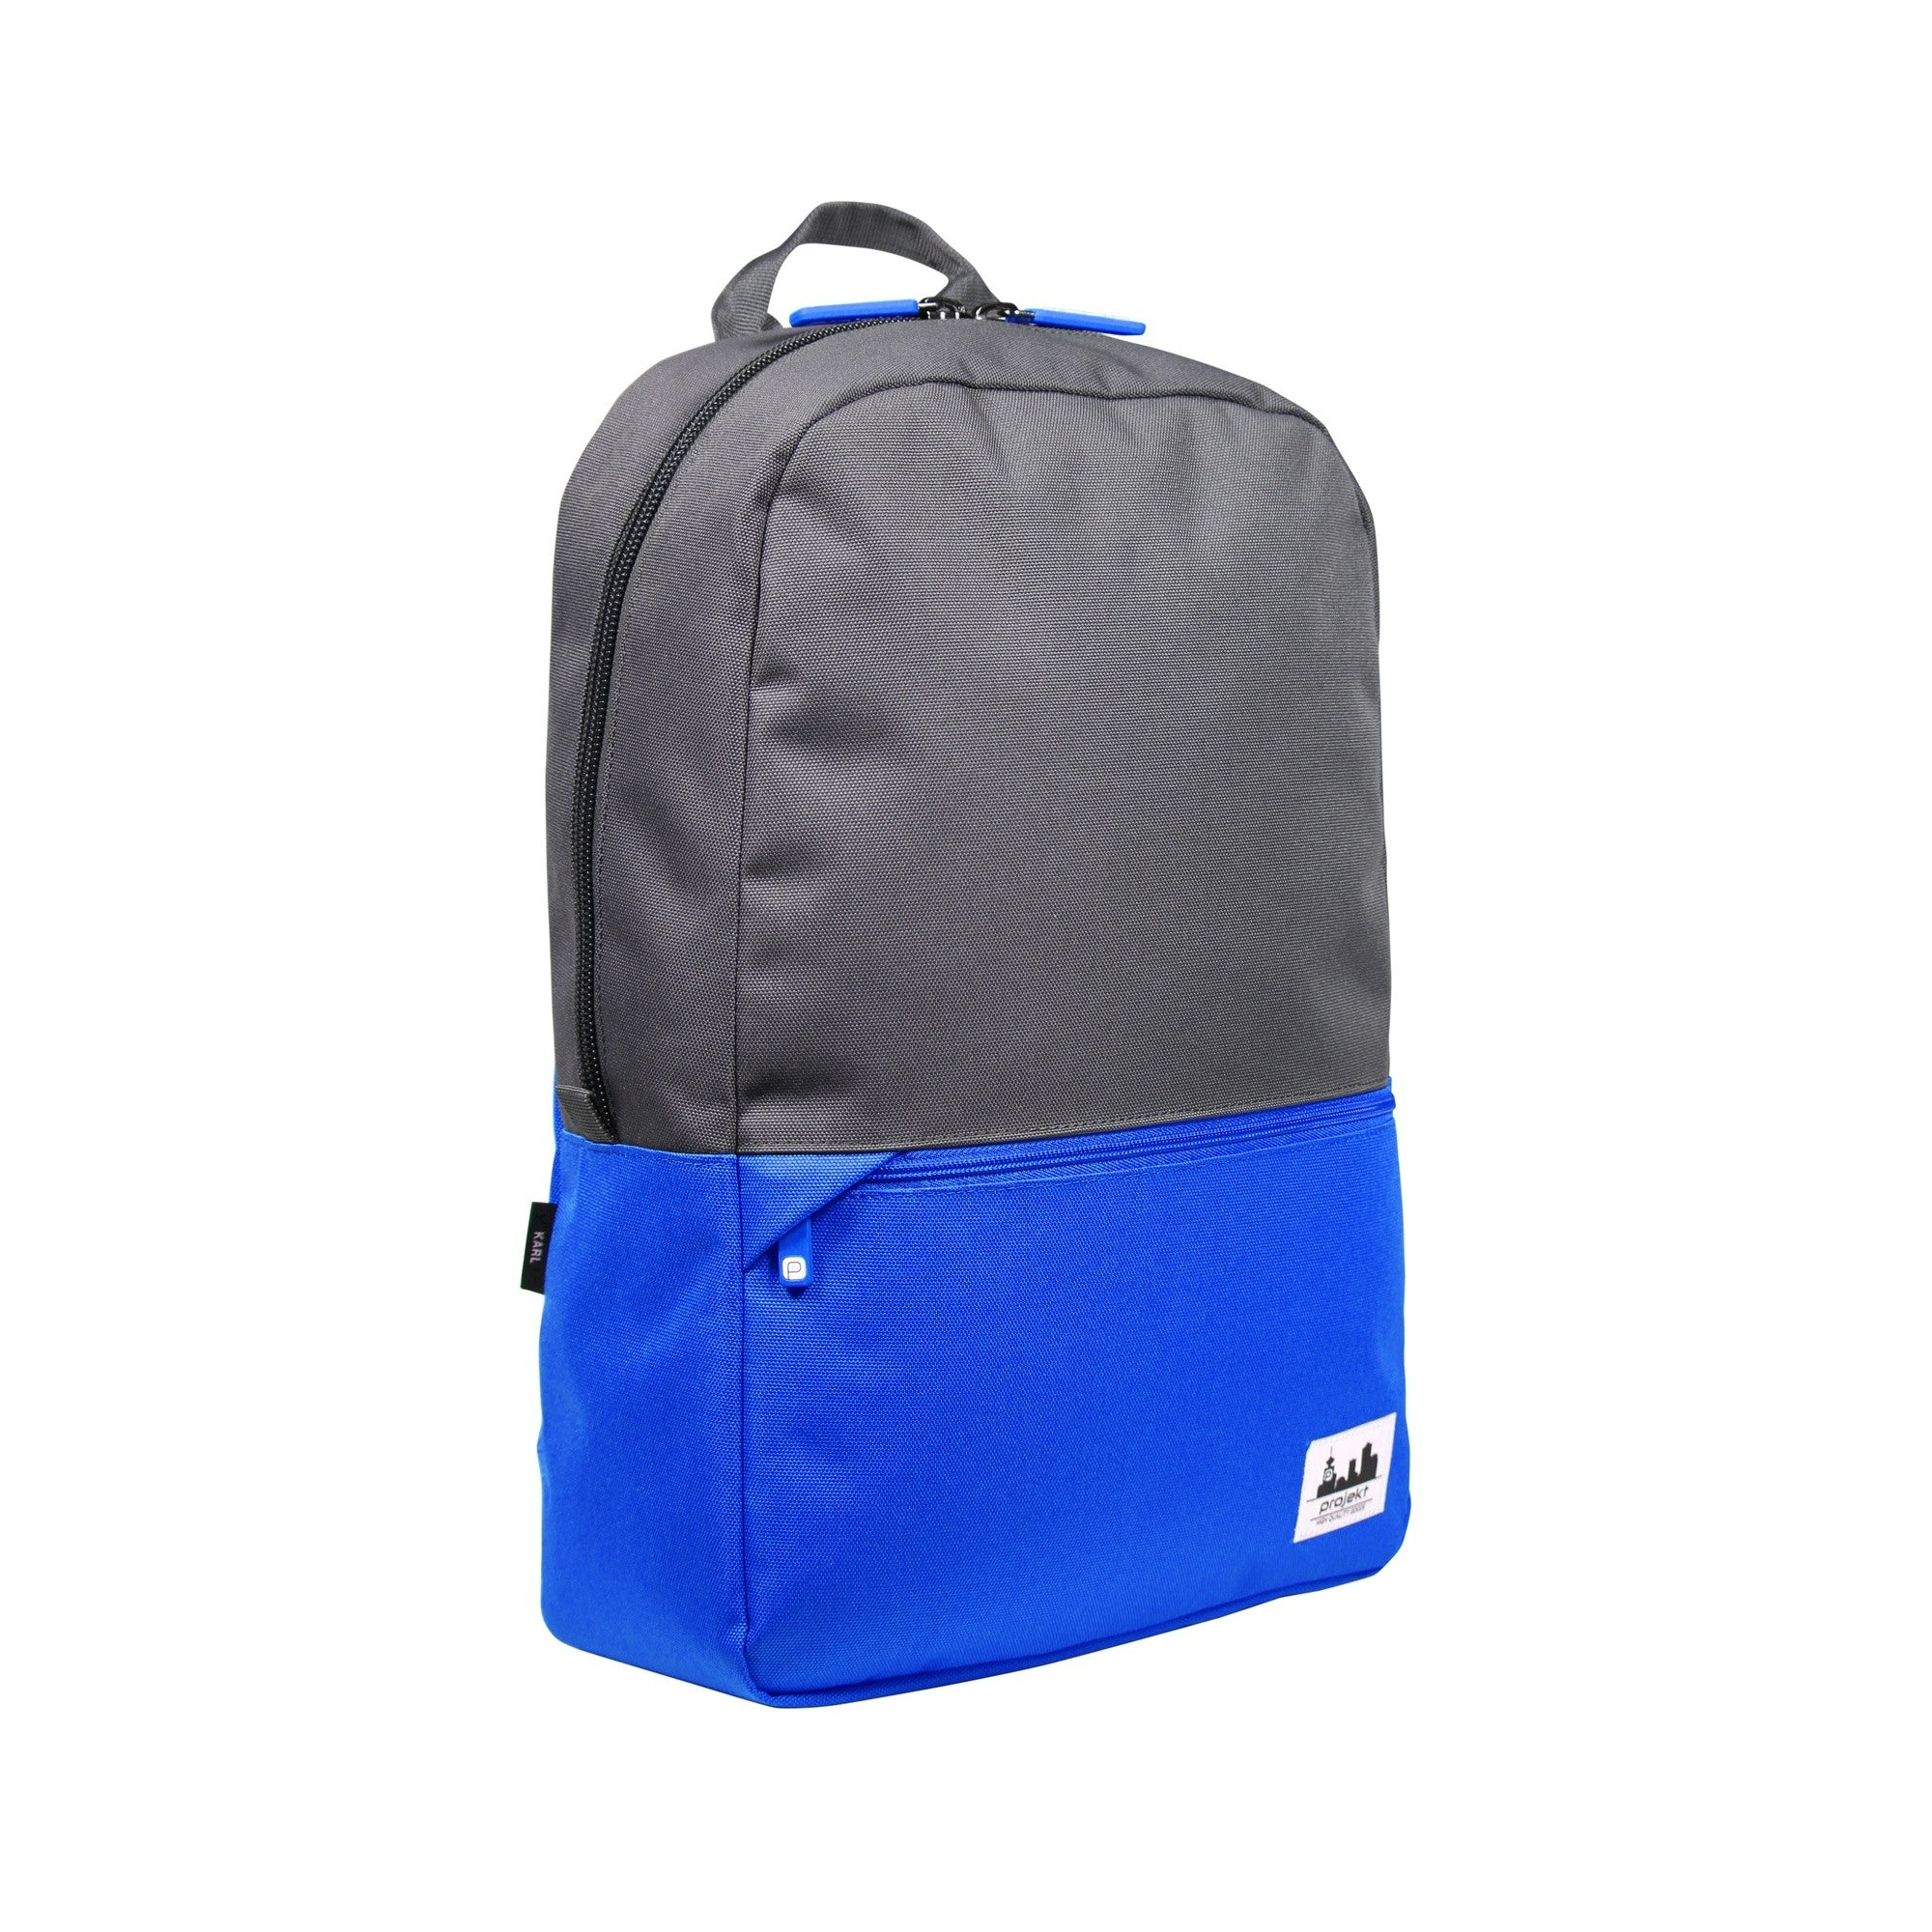 PROJEKT KARL MINIMALIST BACKPACK